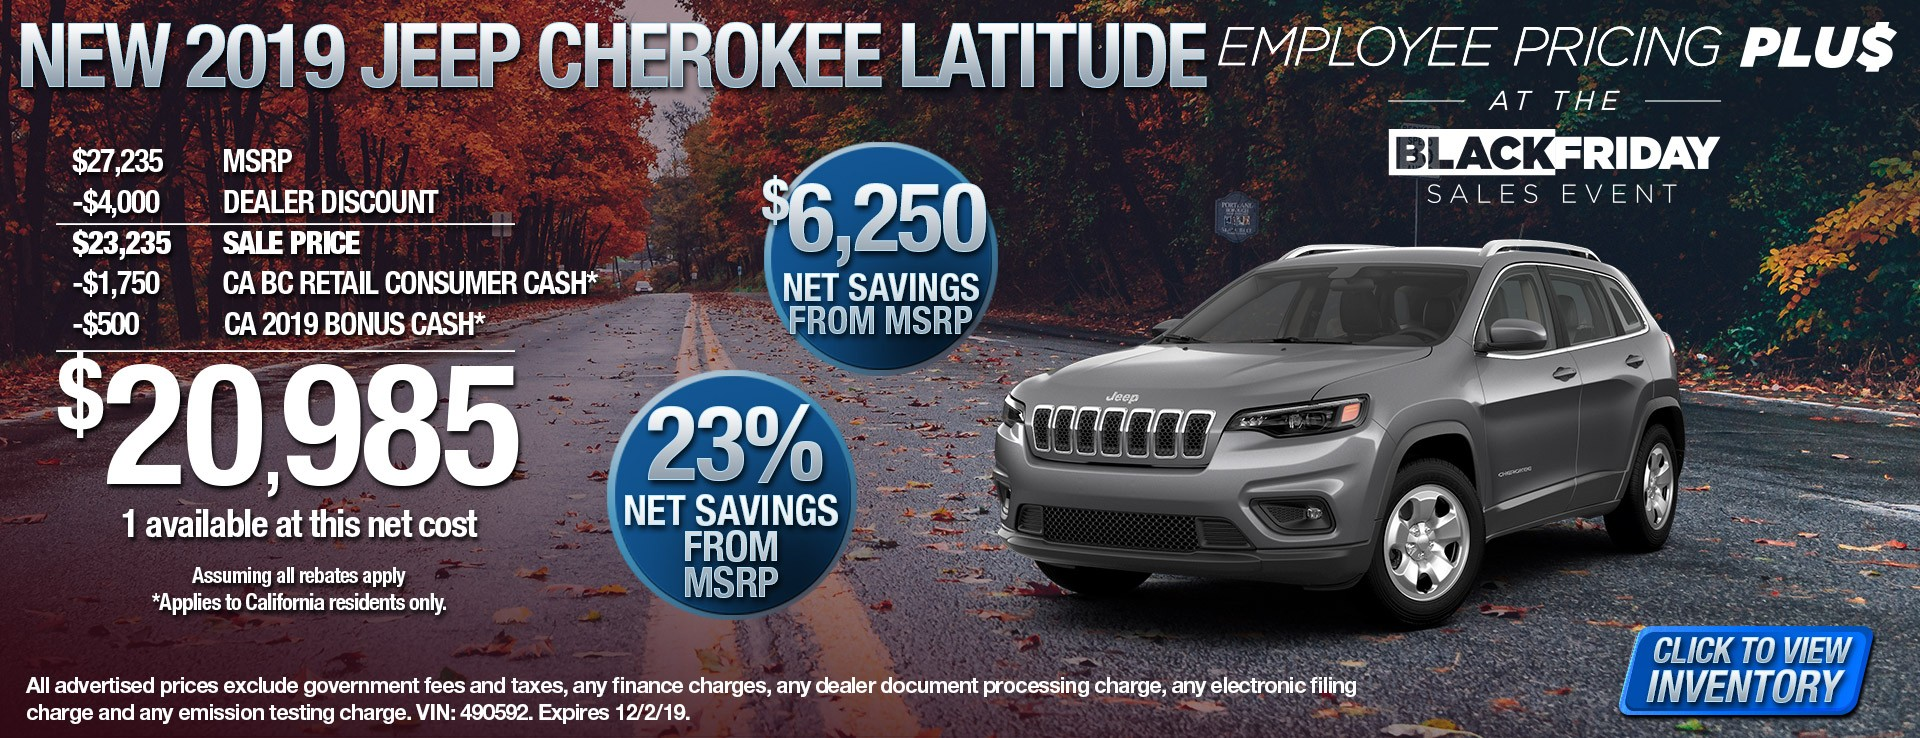 2019 Jeep Cherokee Latitude - $6250 Net Savings from MSRP